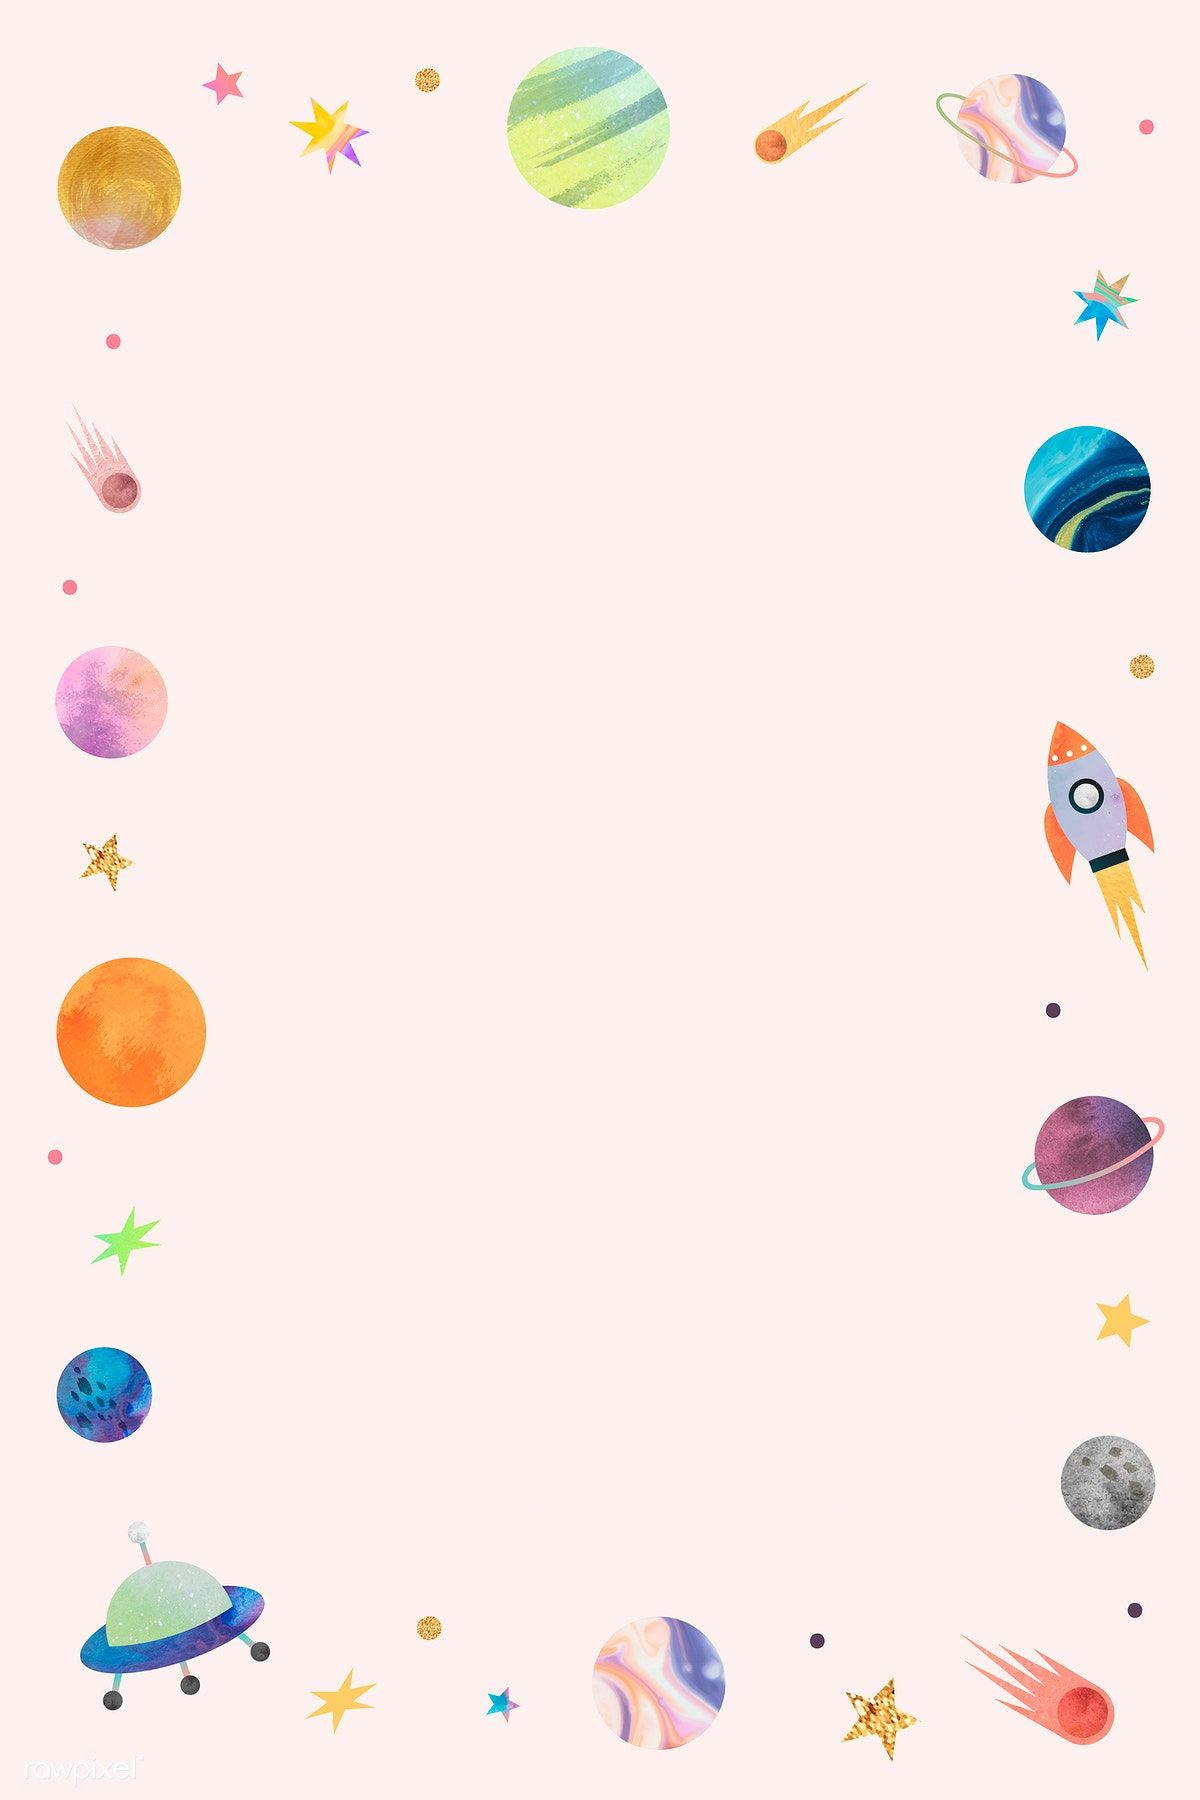 Colorful Galaxy Watercolor Doodle Frame On Pastel Background Vector Premium Image By Rawpixel Com Toon Doodle Frame Watercolor Galaxy Pastel Background